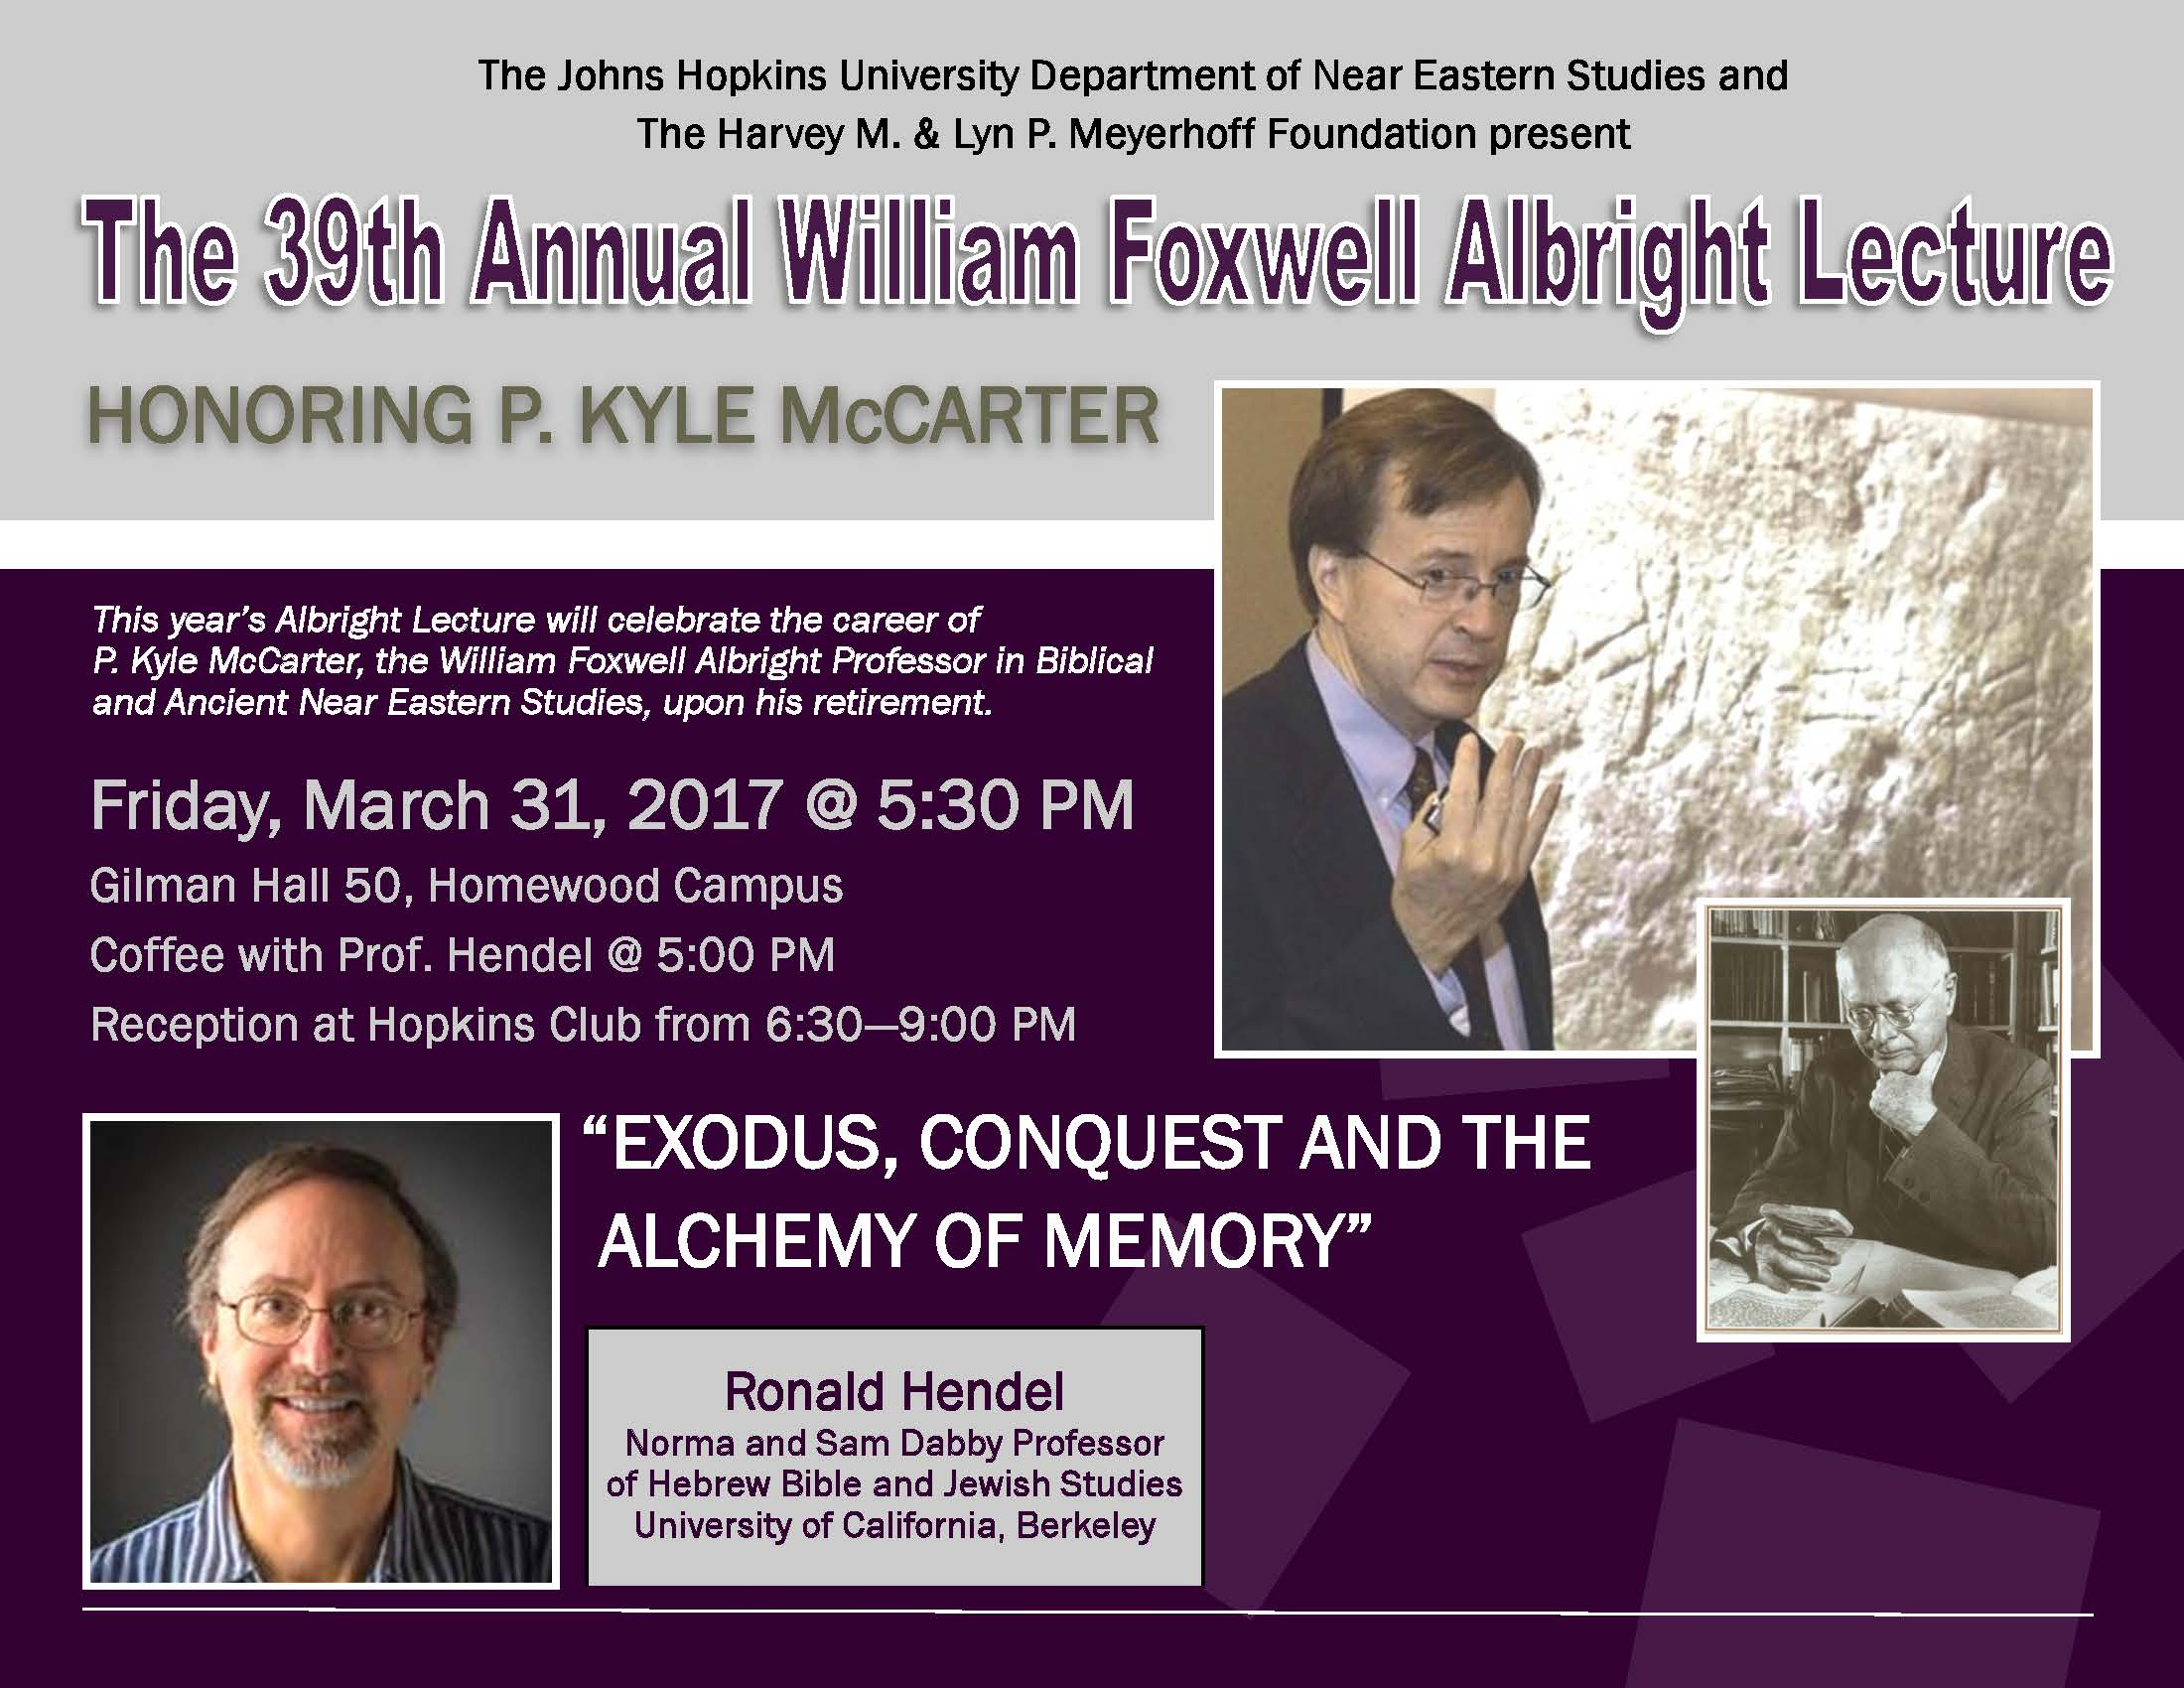 39th annual William Foxwell Albright Lecture